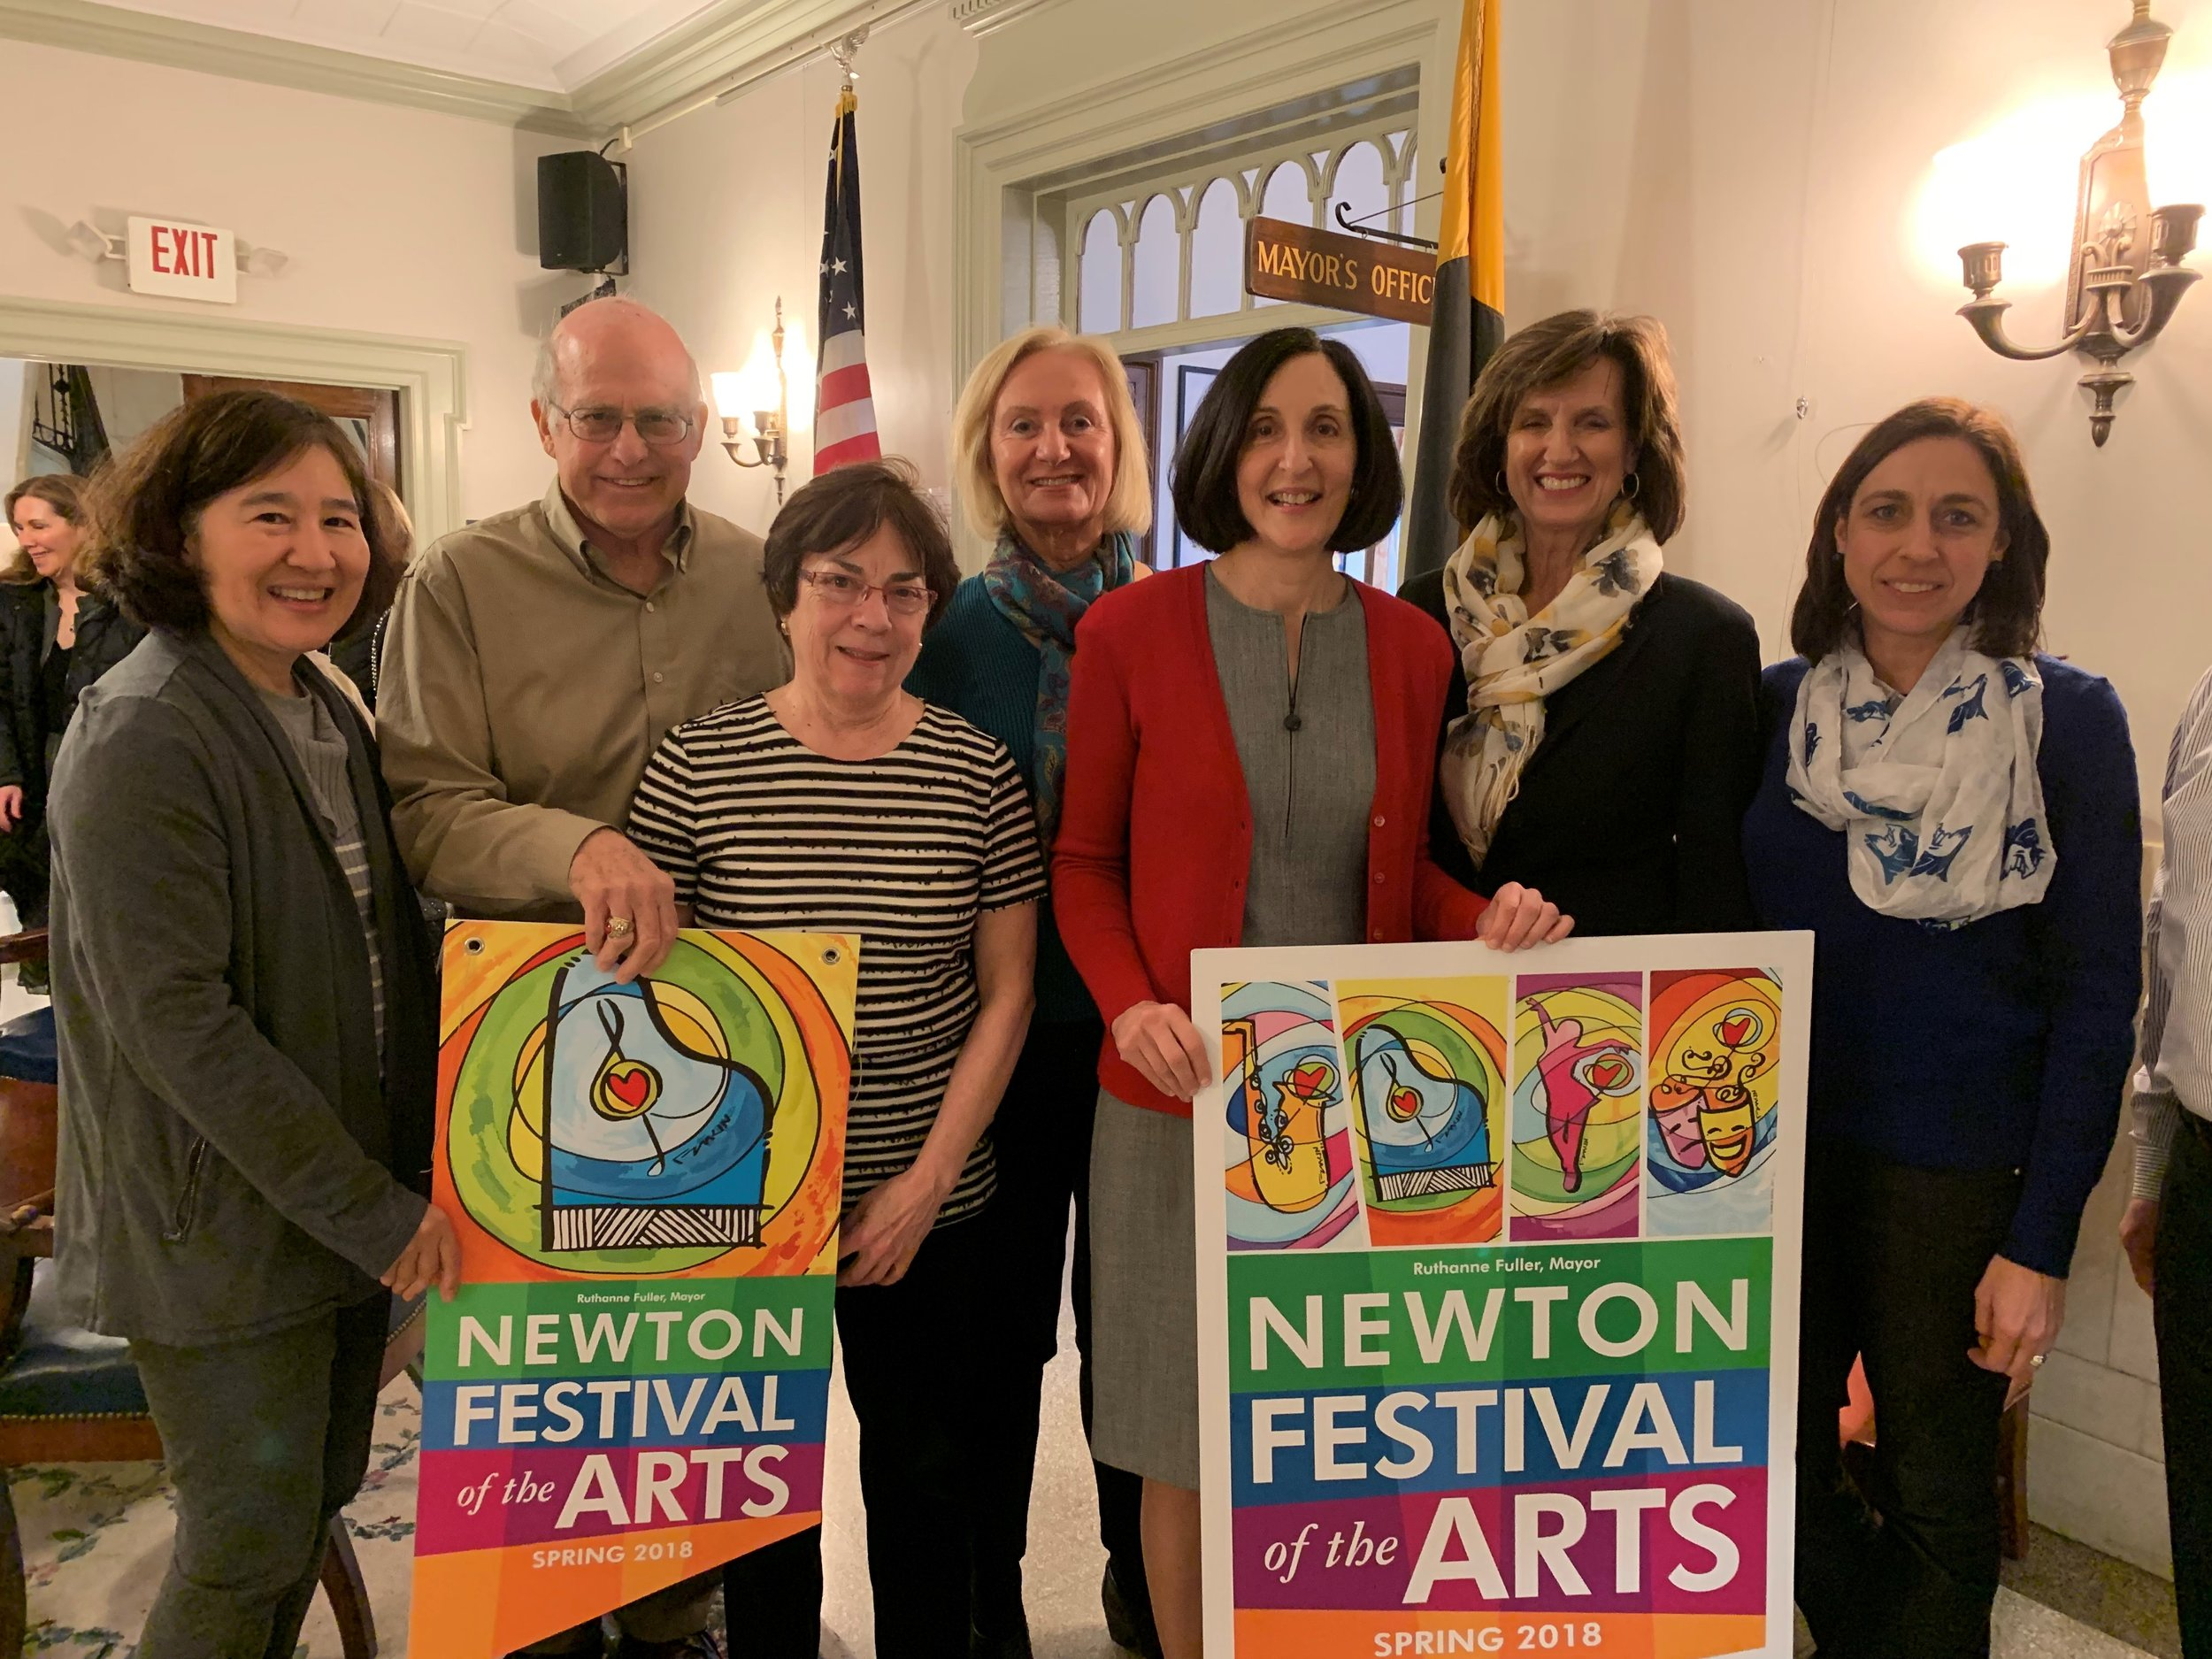 The Mayor's Committee on Community Design for Arts and Culture (CDAC) showcases the Newton Festival of the Arts  Photo Credit: Mayors March 26 2019 Update